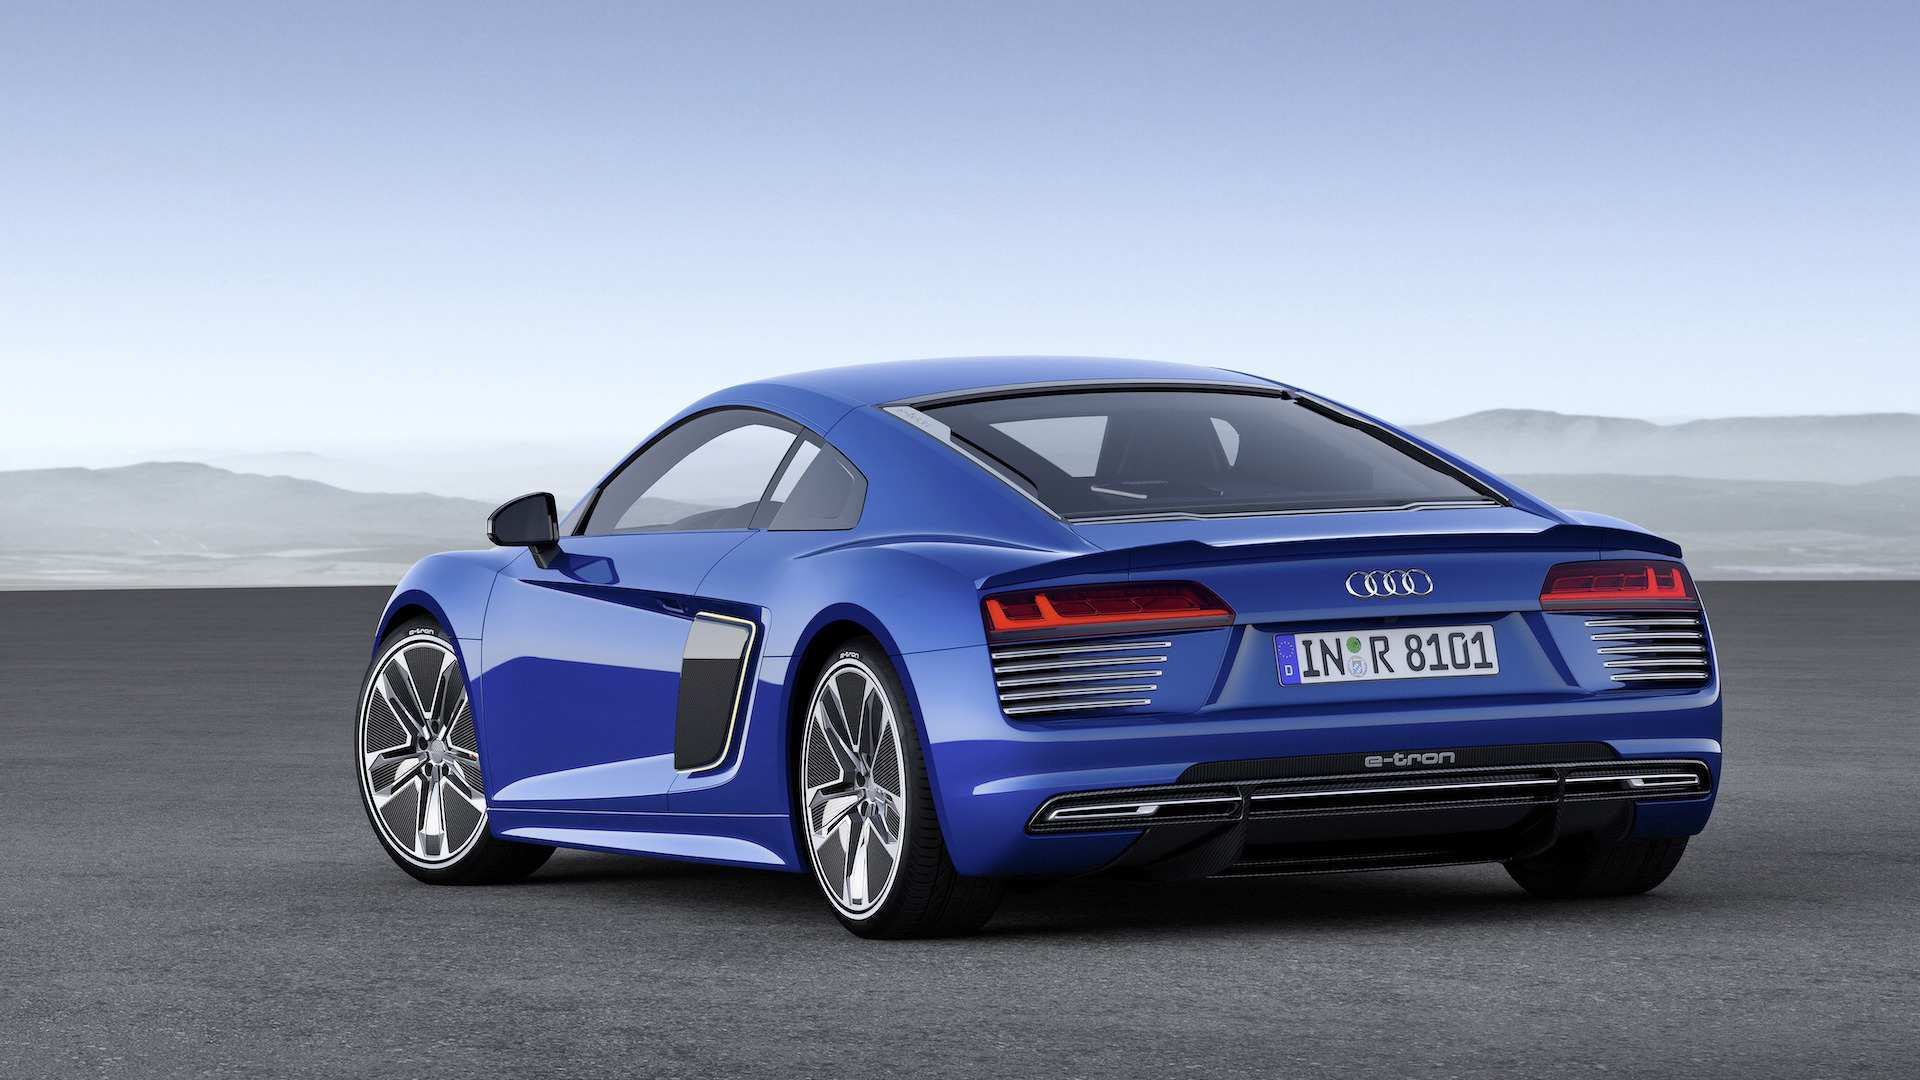 94 The Best 2020 Audi R8 E Tron Redesign